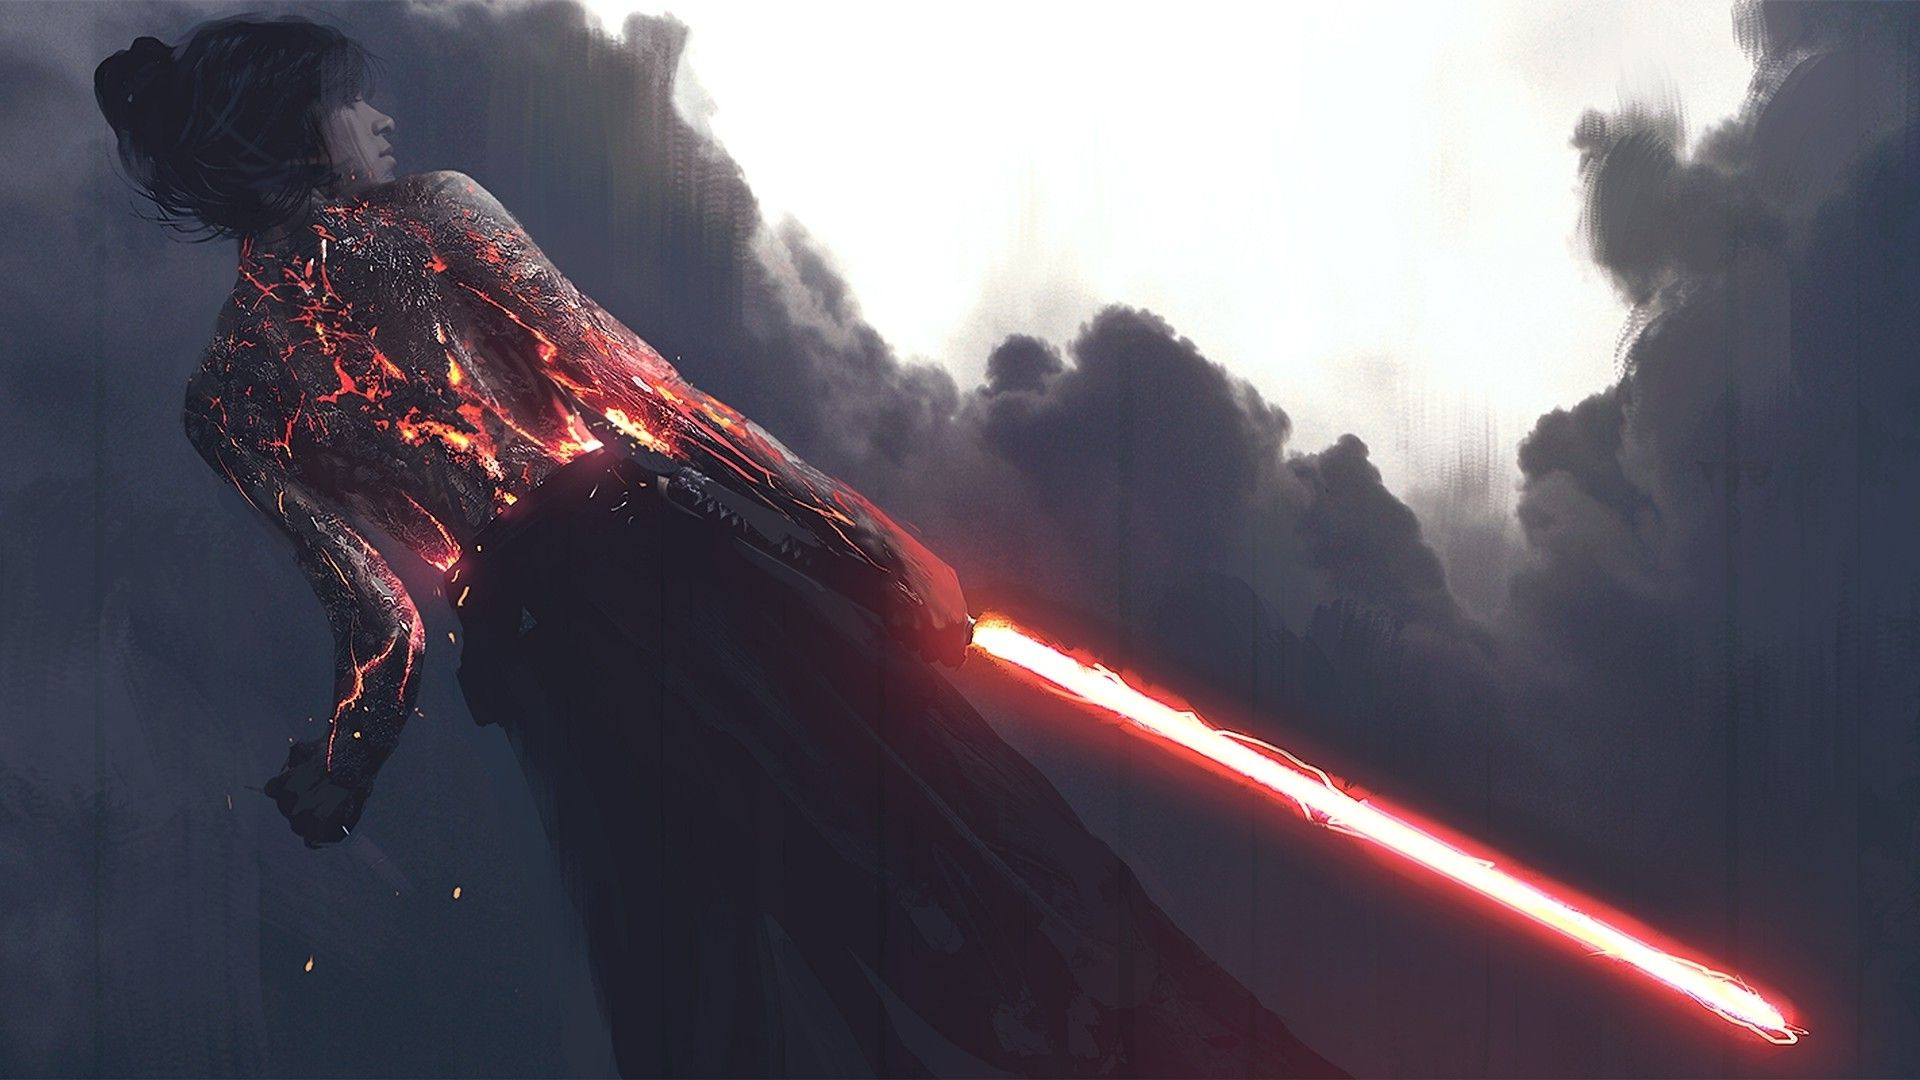 Star Wars Sith Wallpapers Top Free Star Wars Sith Backgrounds Wallpaperaccess